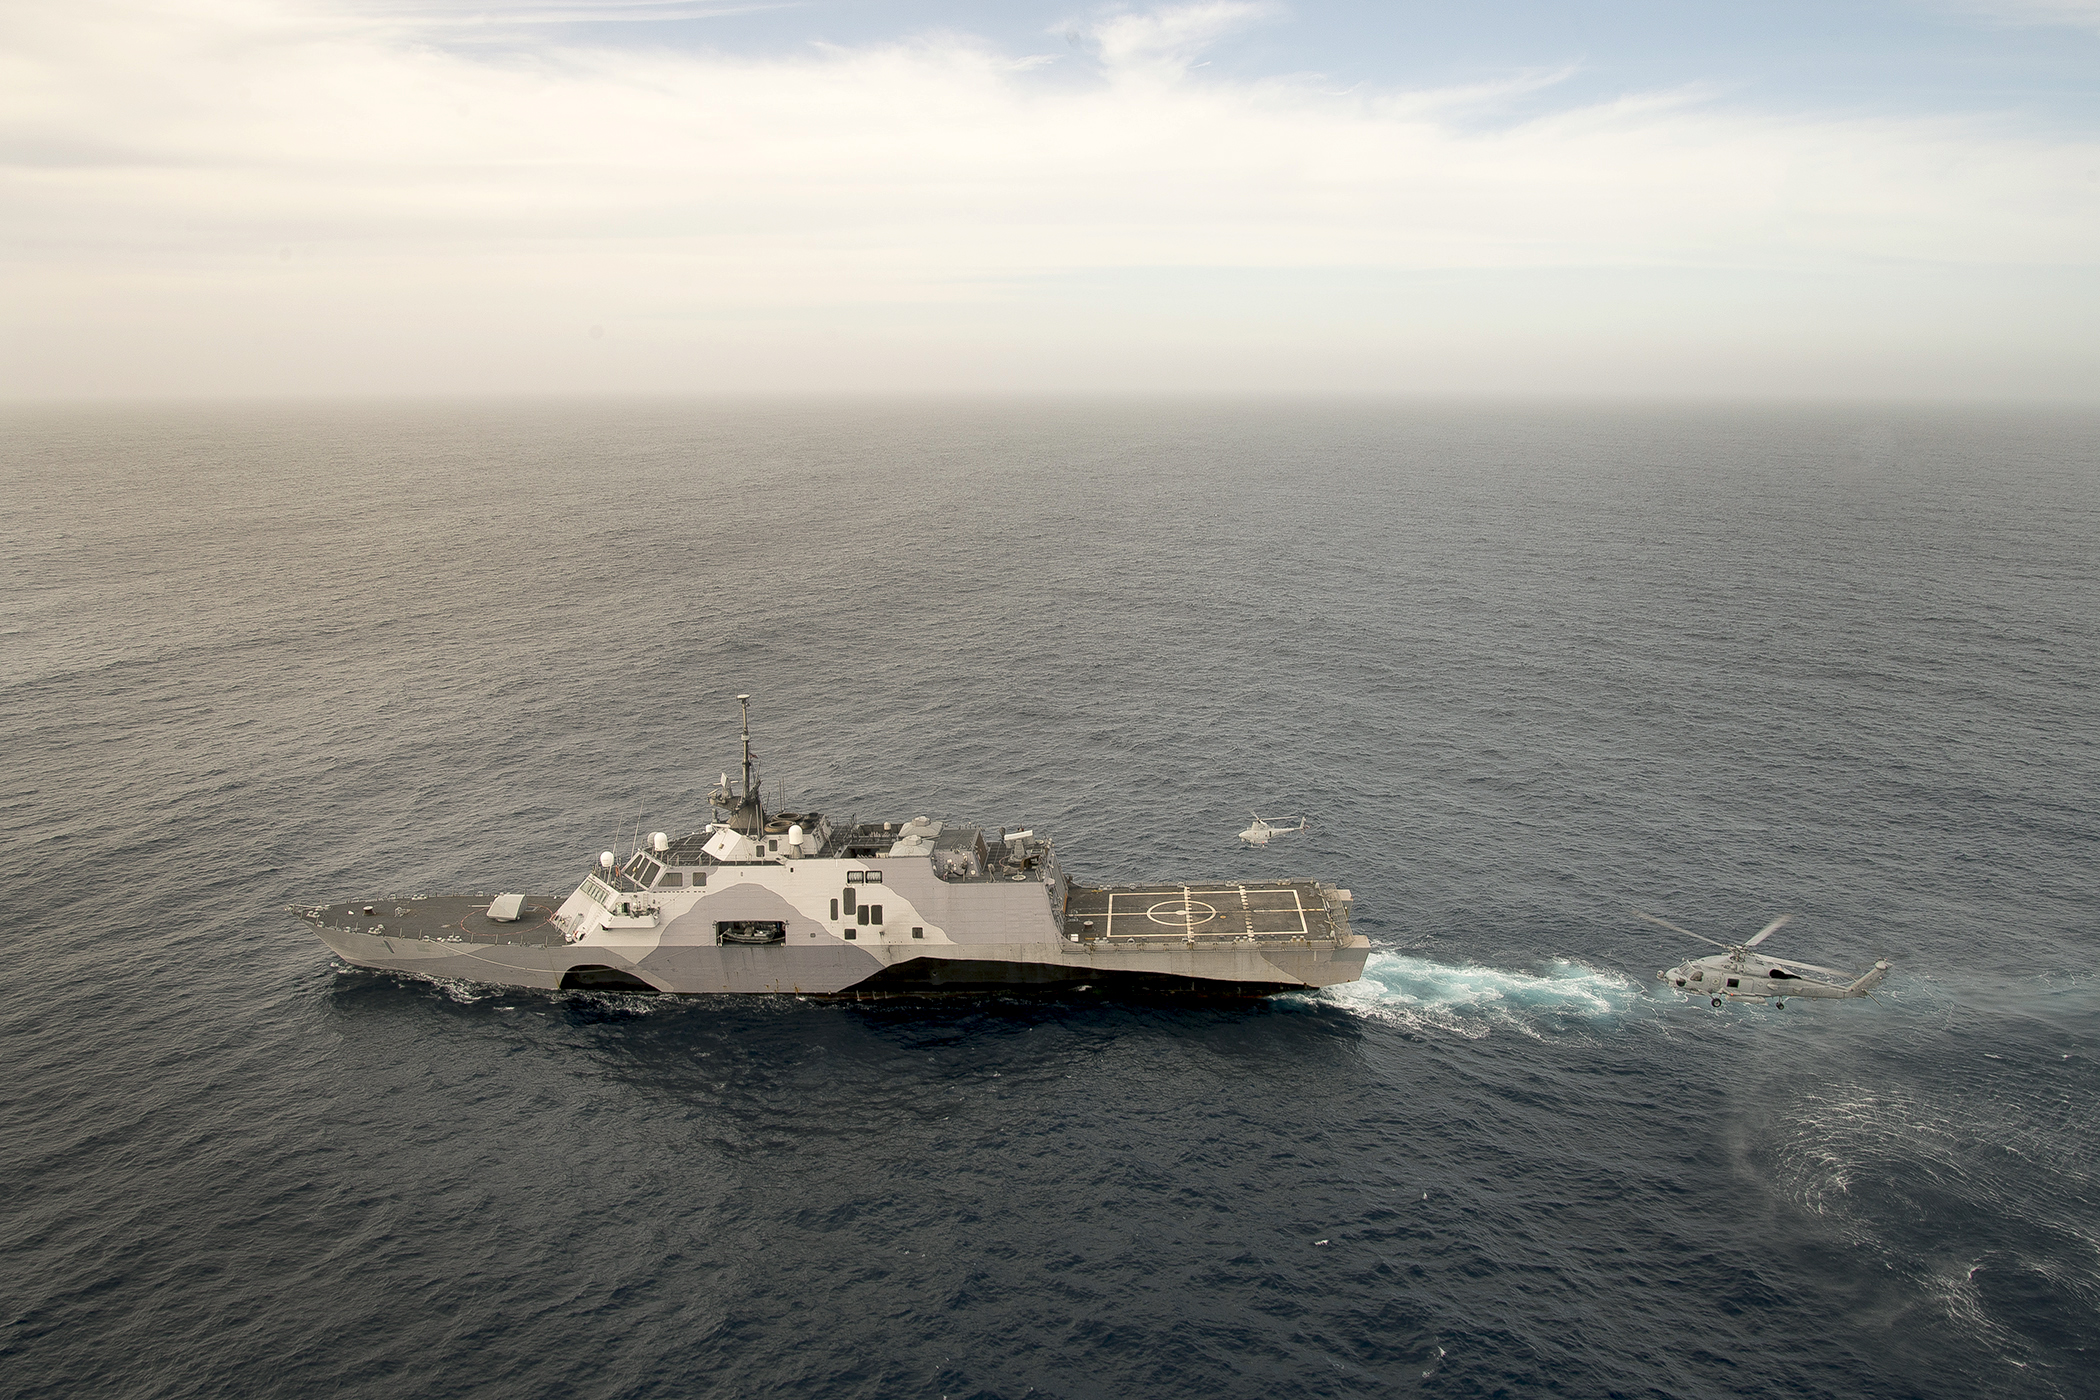 An MH-60R Sea Hawk helicopter and an MQ-8B Fire Scout unmanned aerial vehicle conduct coordinated flight operations with the littoral combat ship USS Freedom (LCS-1) in the Southern California operating area on April 30, 2015. US Navy photo.